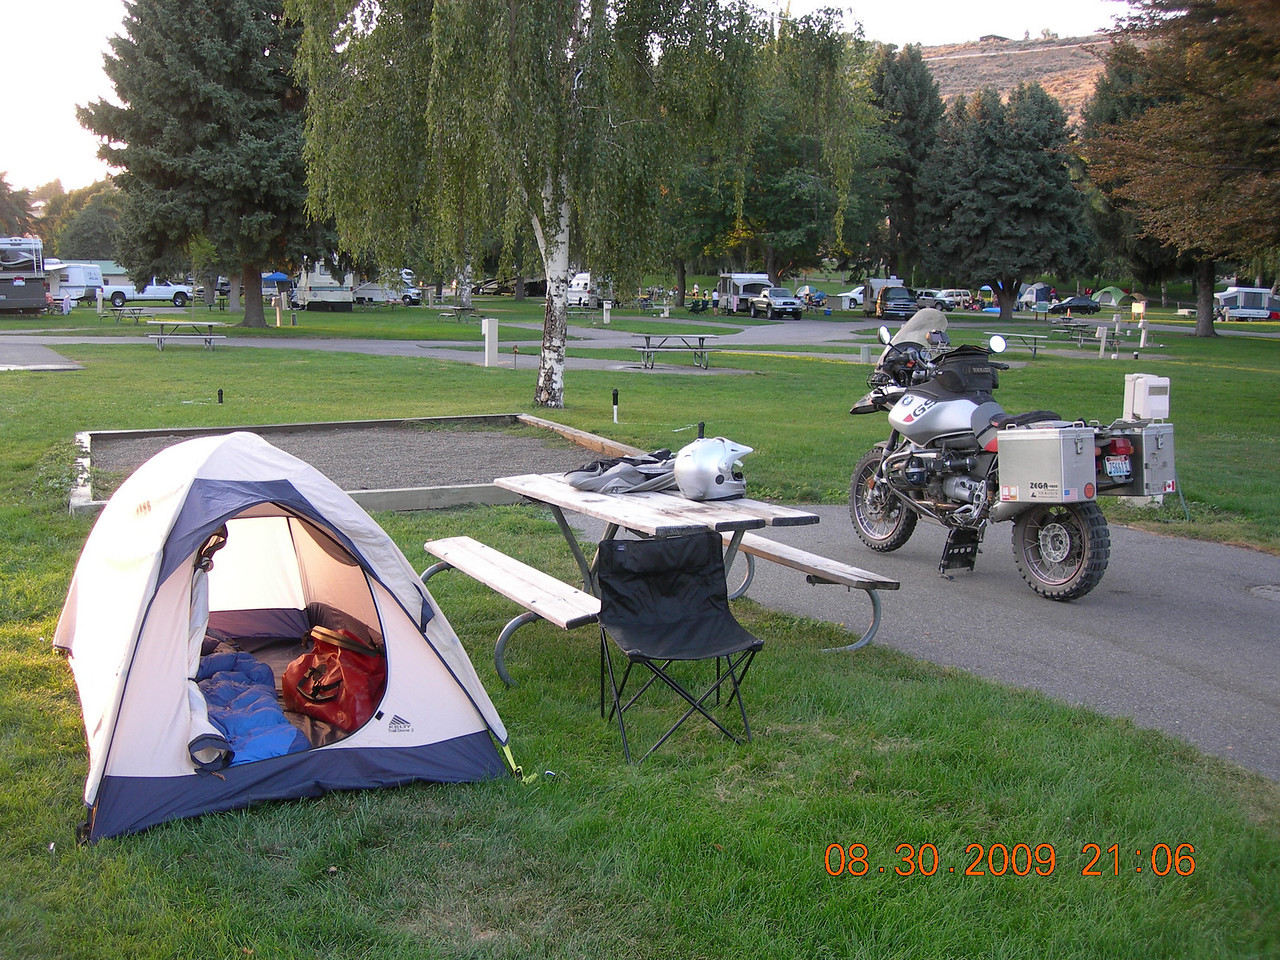 Home for the night at the City of Chelan campground.  I would again be joined by the VStrom guys from Redmond, Pedro and Bill along with Tom Mehren and his wife from the SoundRider.com crew for another night of story telling and laughter.